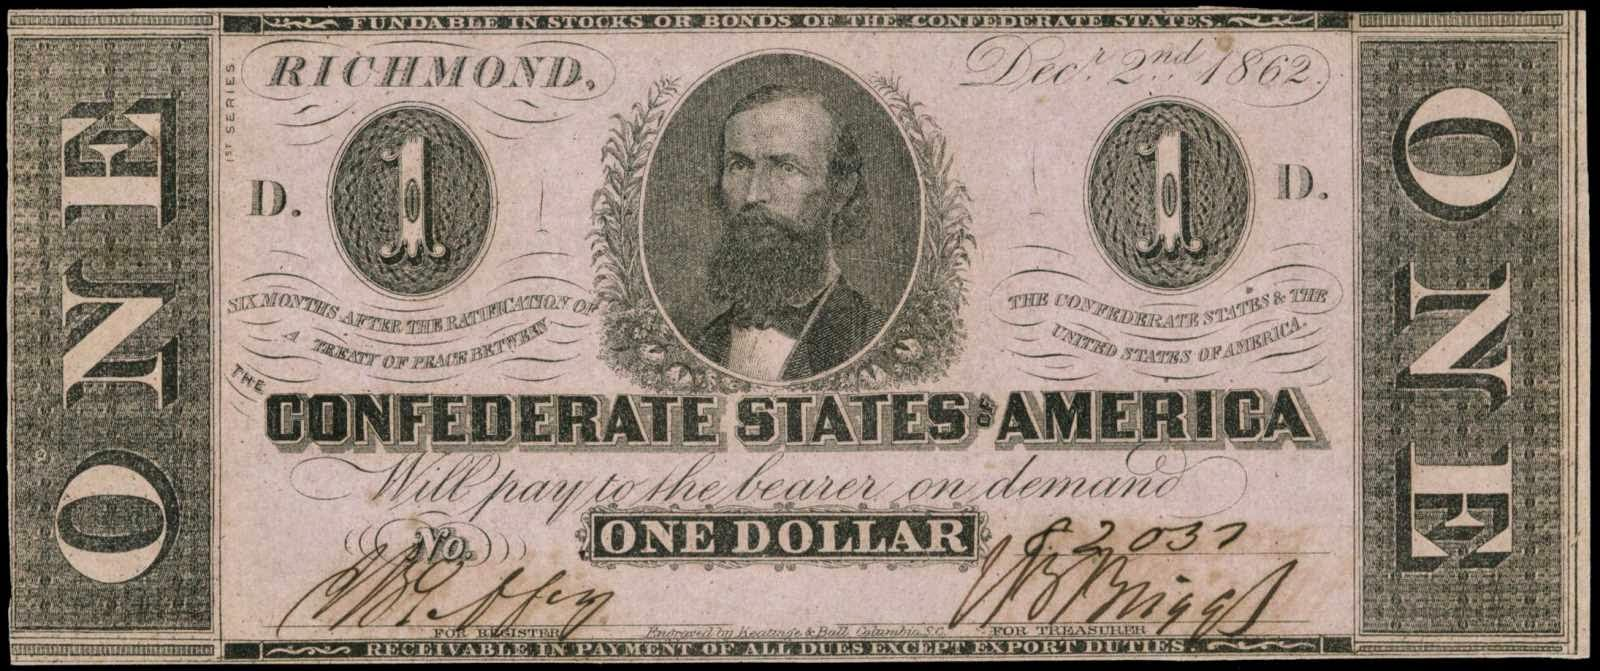 Confederate States of America Dollar